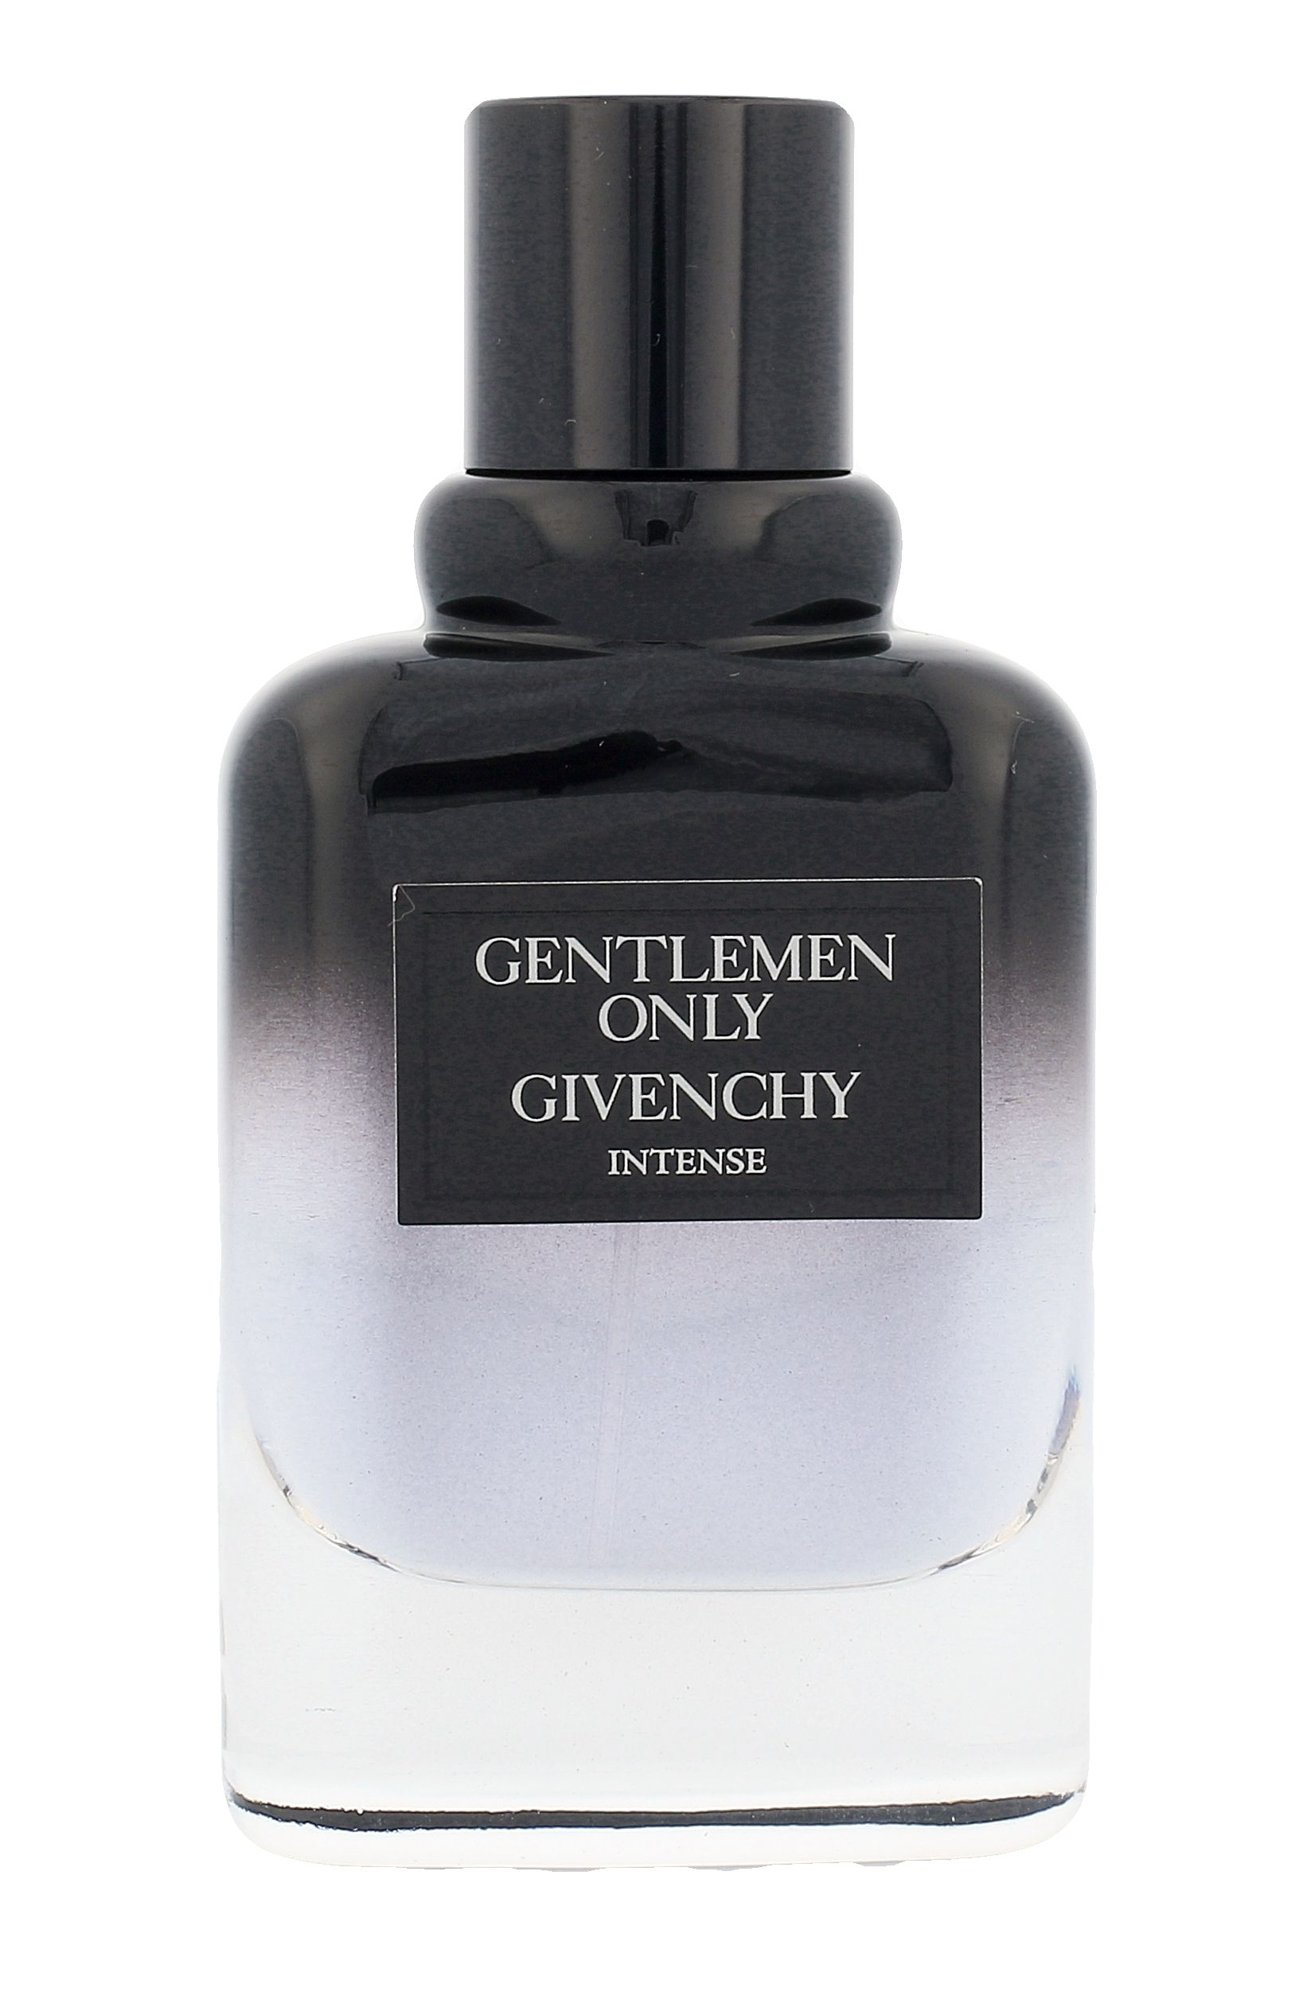 Givenchy Gentlemen Only Intense EDT 50ml